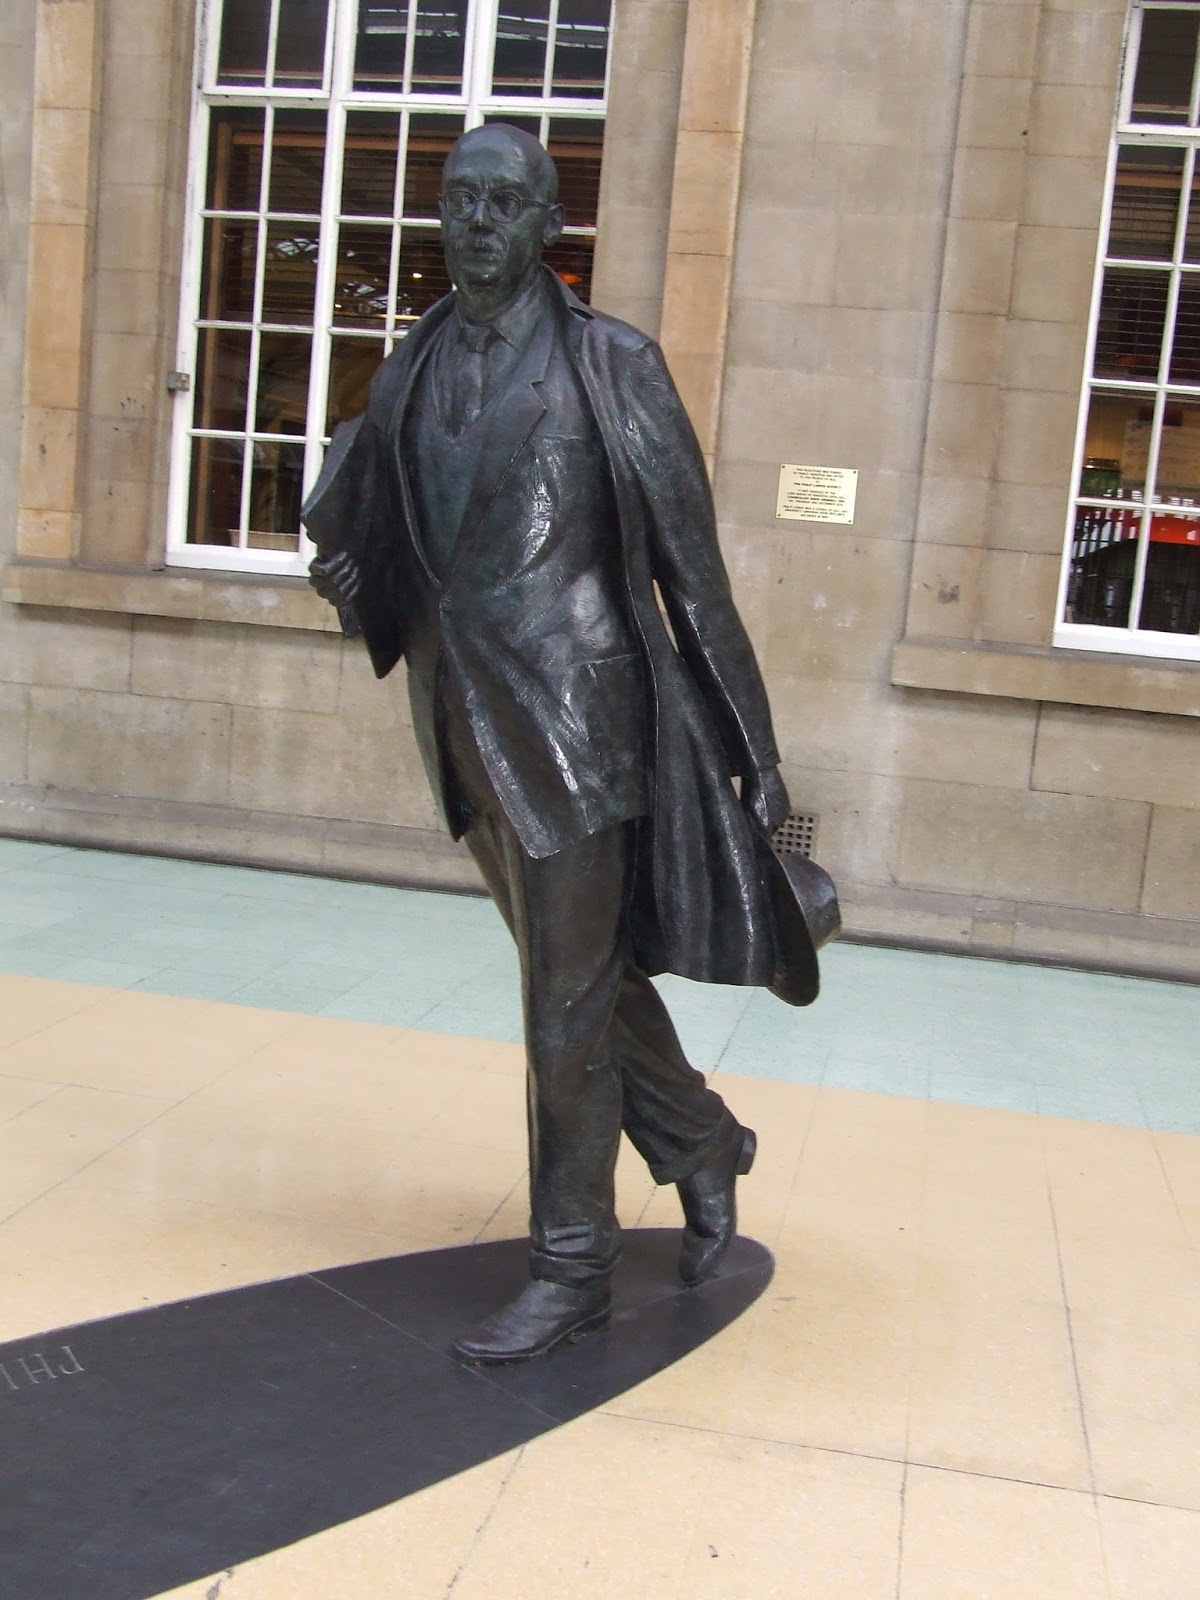 the tanjara at hull station philip larkin statue by sculptor martin jennings